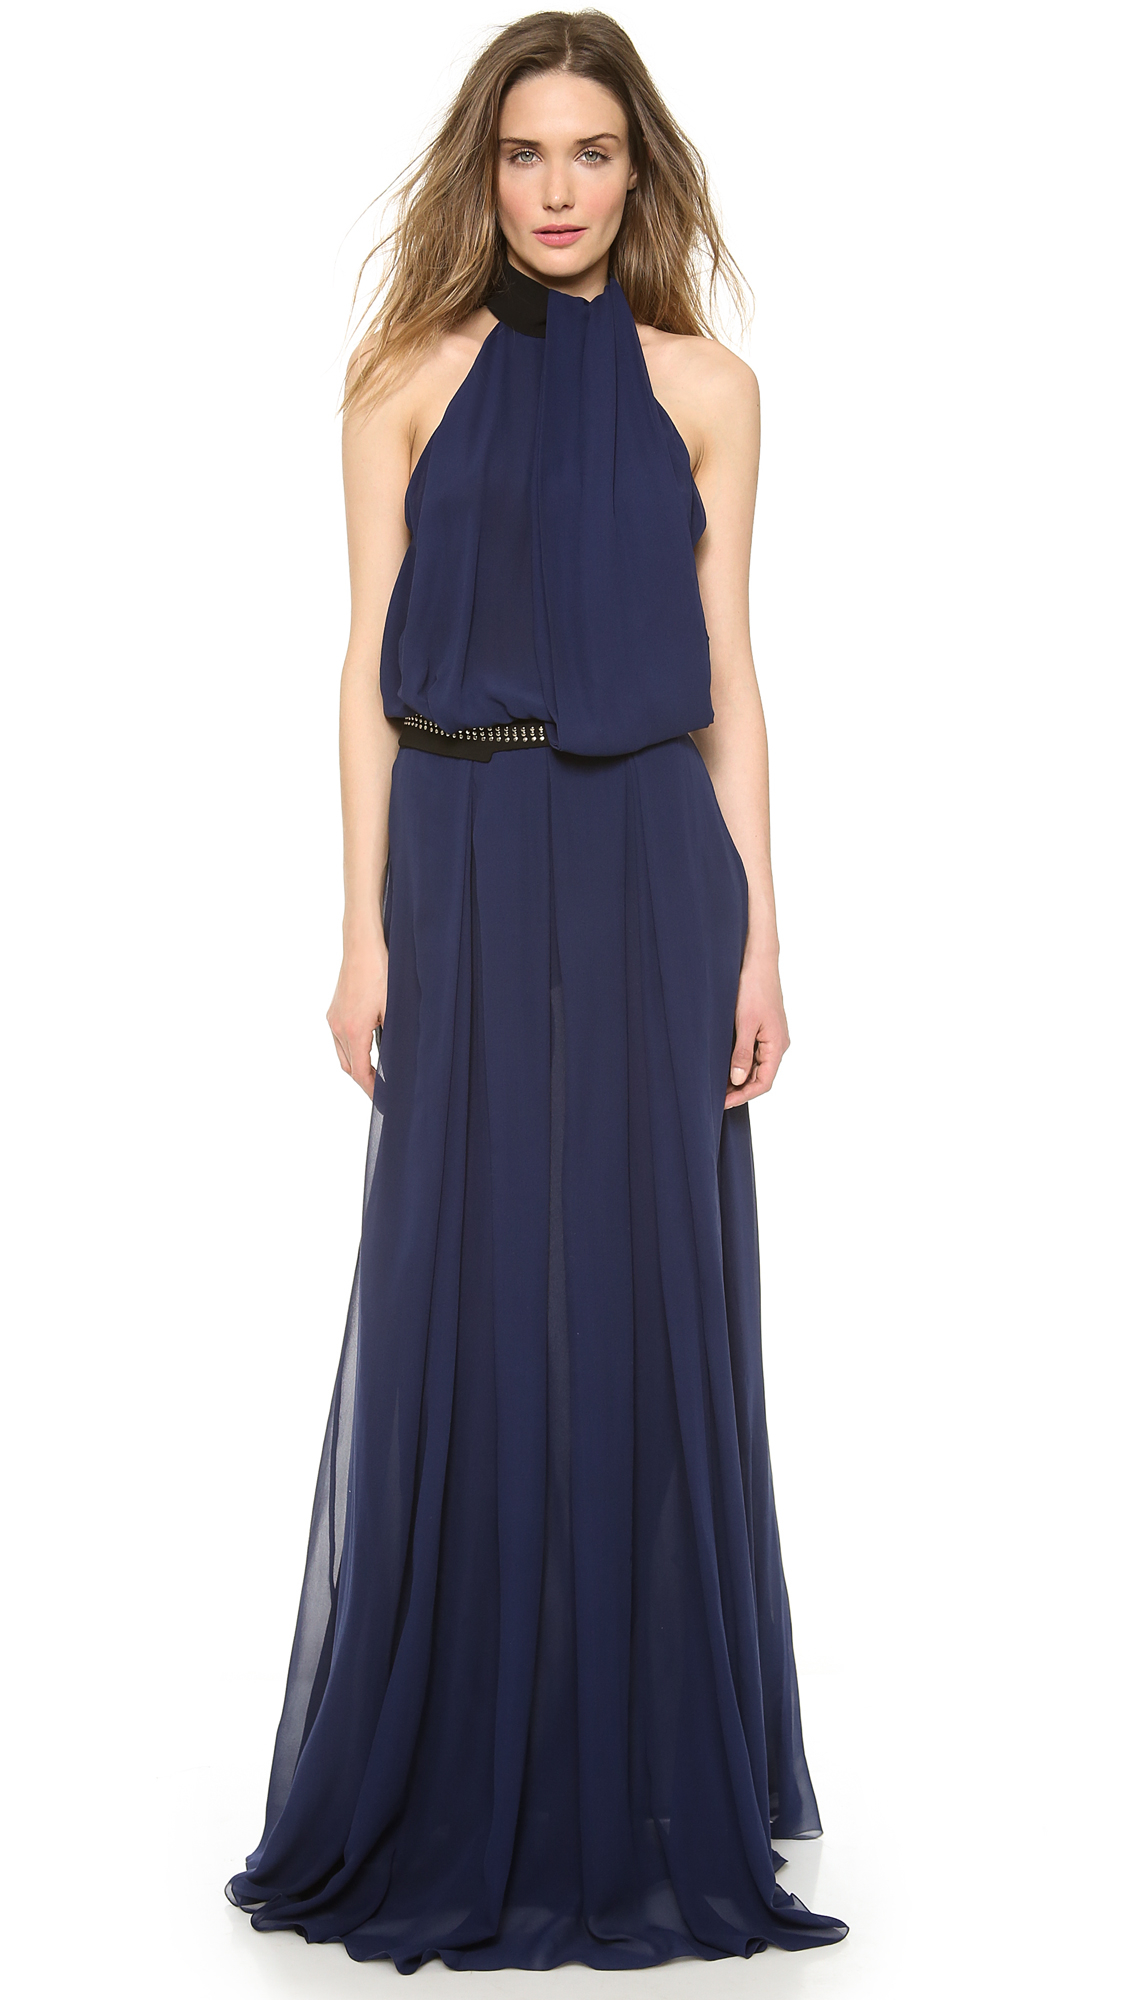 Gown - Flowing and feminine, a halter neck maxi dress or floor-length gown is a versatile addition to your wardrobe. For casual wear, pair a maxi dresses with sandals, but for a sweeping halter neck gown, add heels and jewelry for an elegant statement.